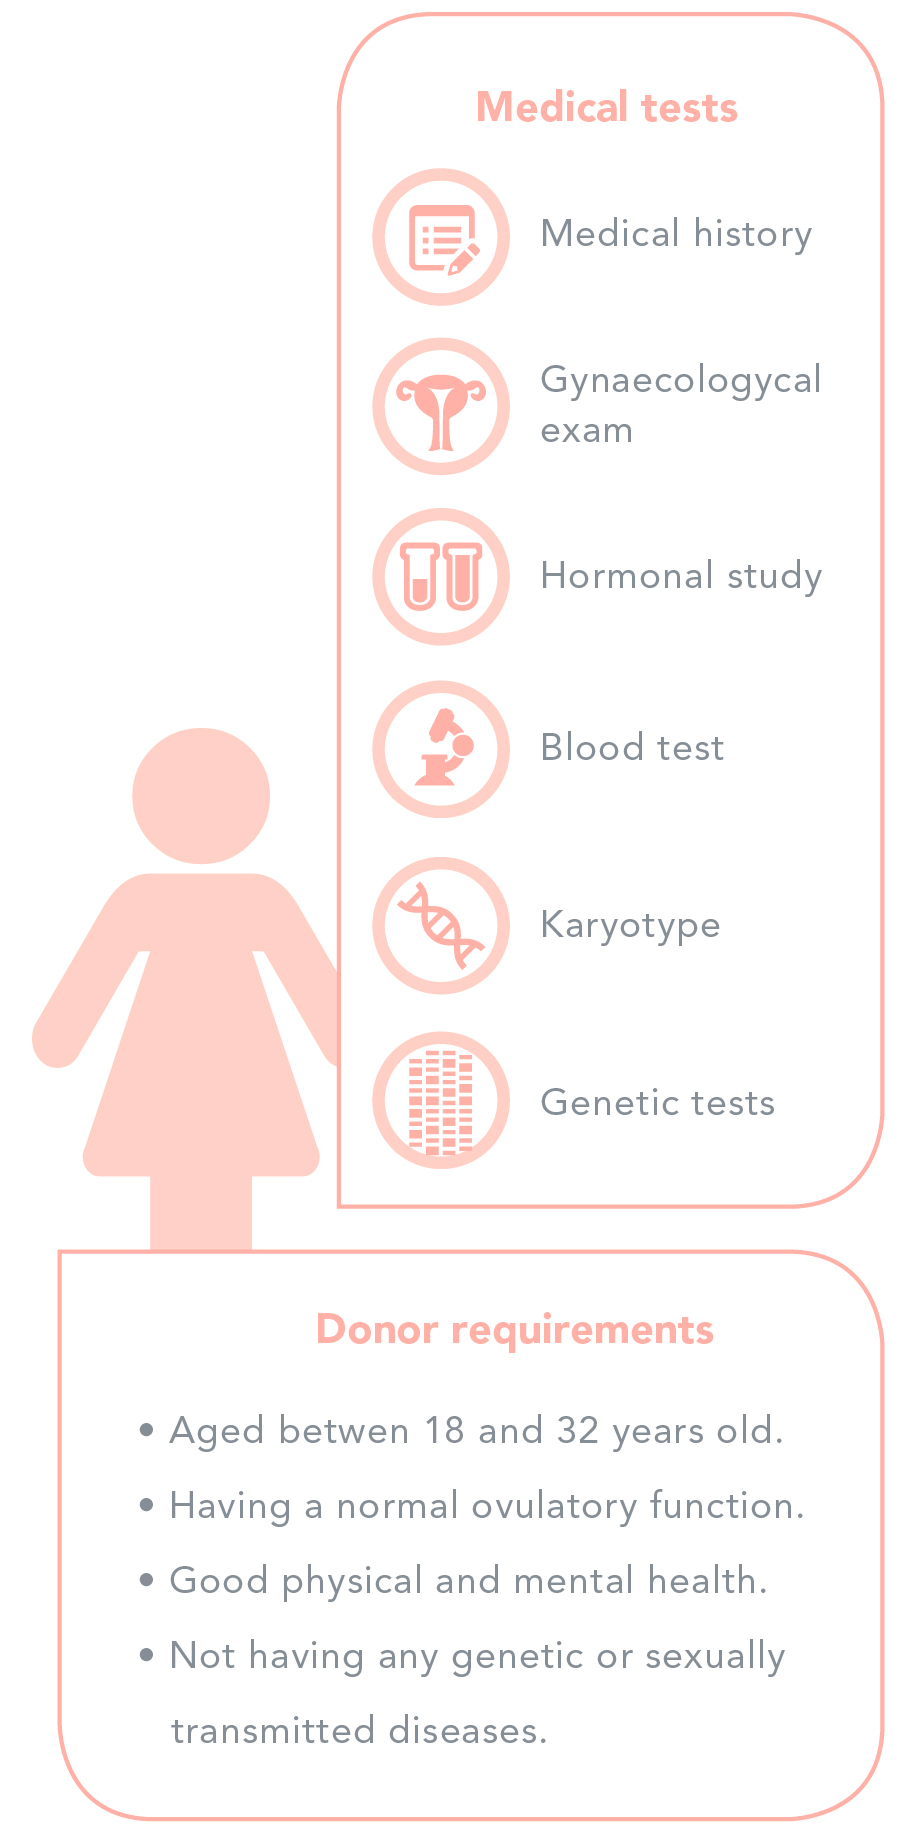 Donor selection and performed tests - Women